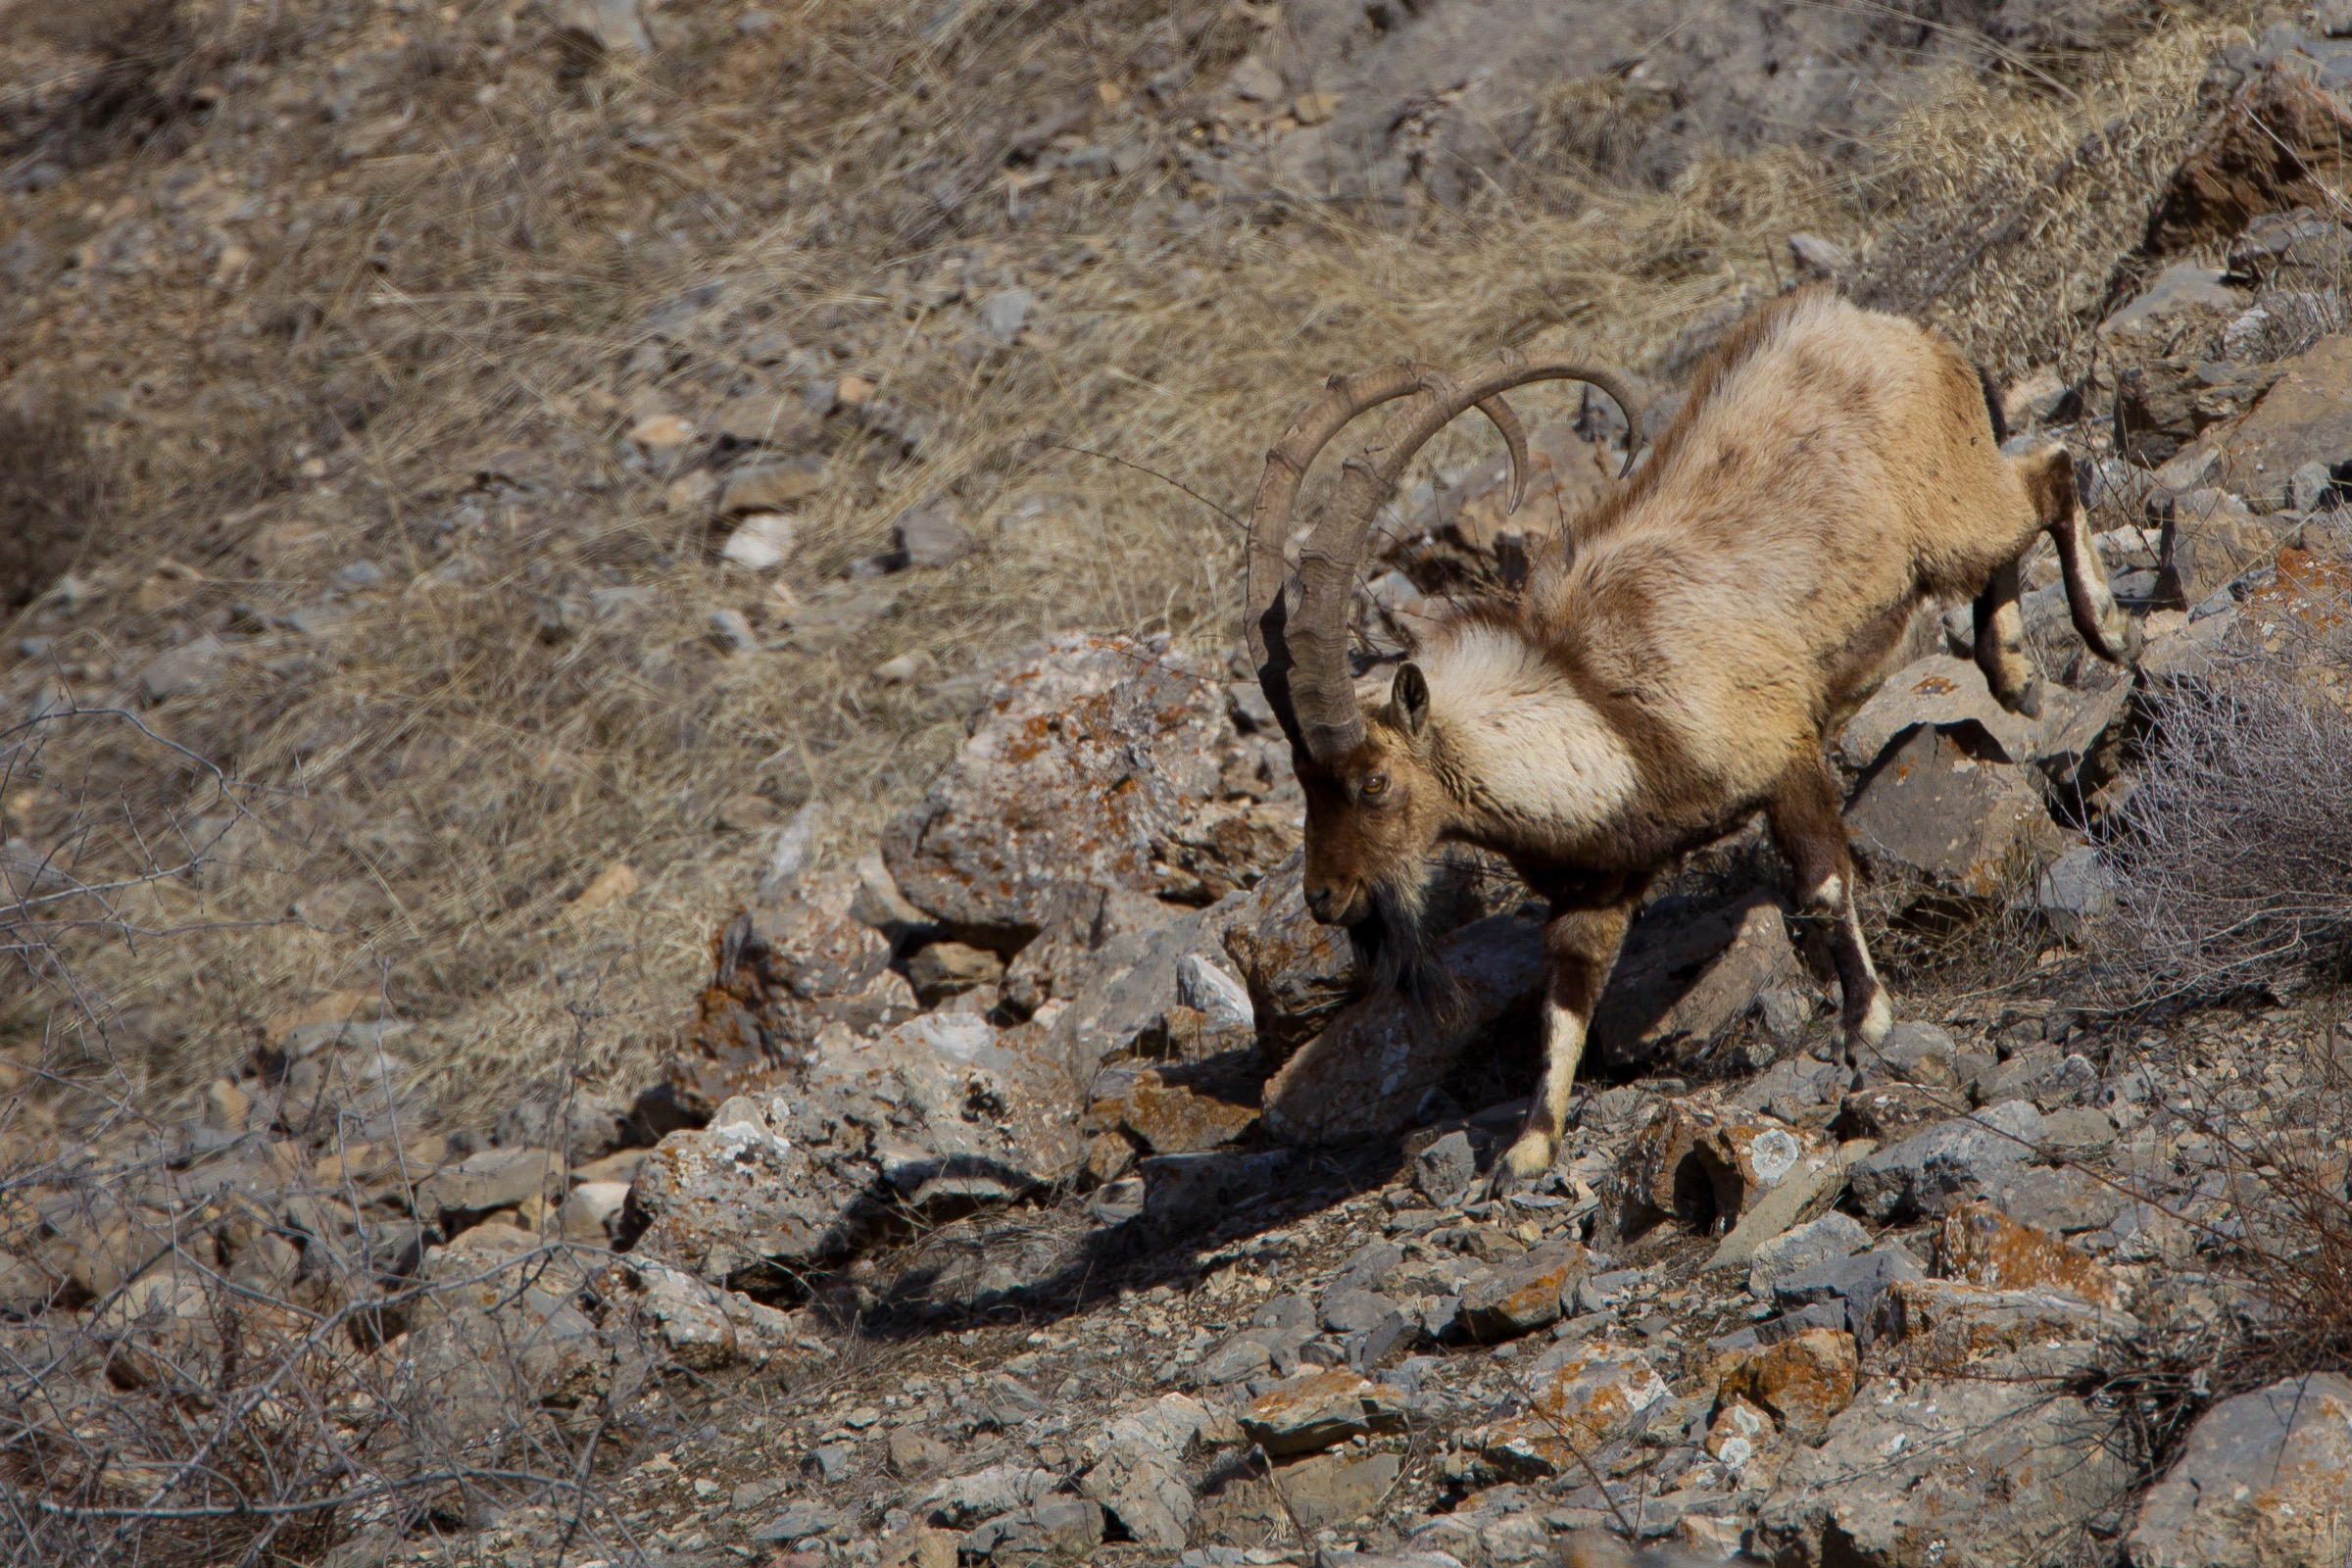 A male wild goat (Capra aegagrus) descends a steep, rocky slope in northeastern Iran's Tandooreh National Park. Photograph by Behzad Farahanchi